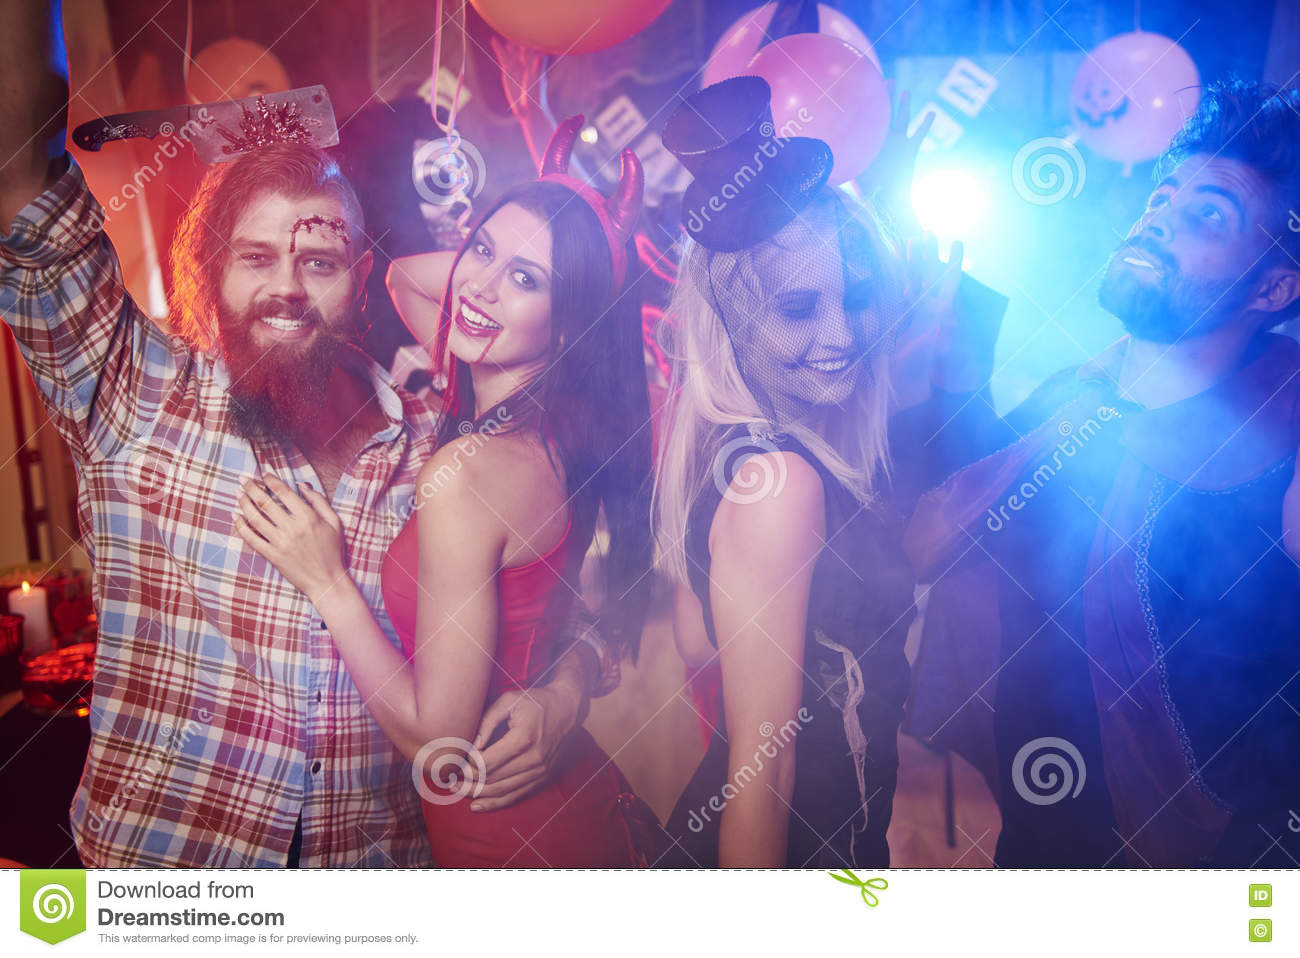 Halloween Party Stock Photo - Image: 78772303